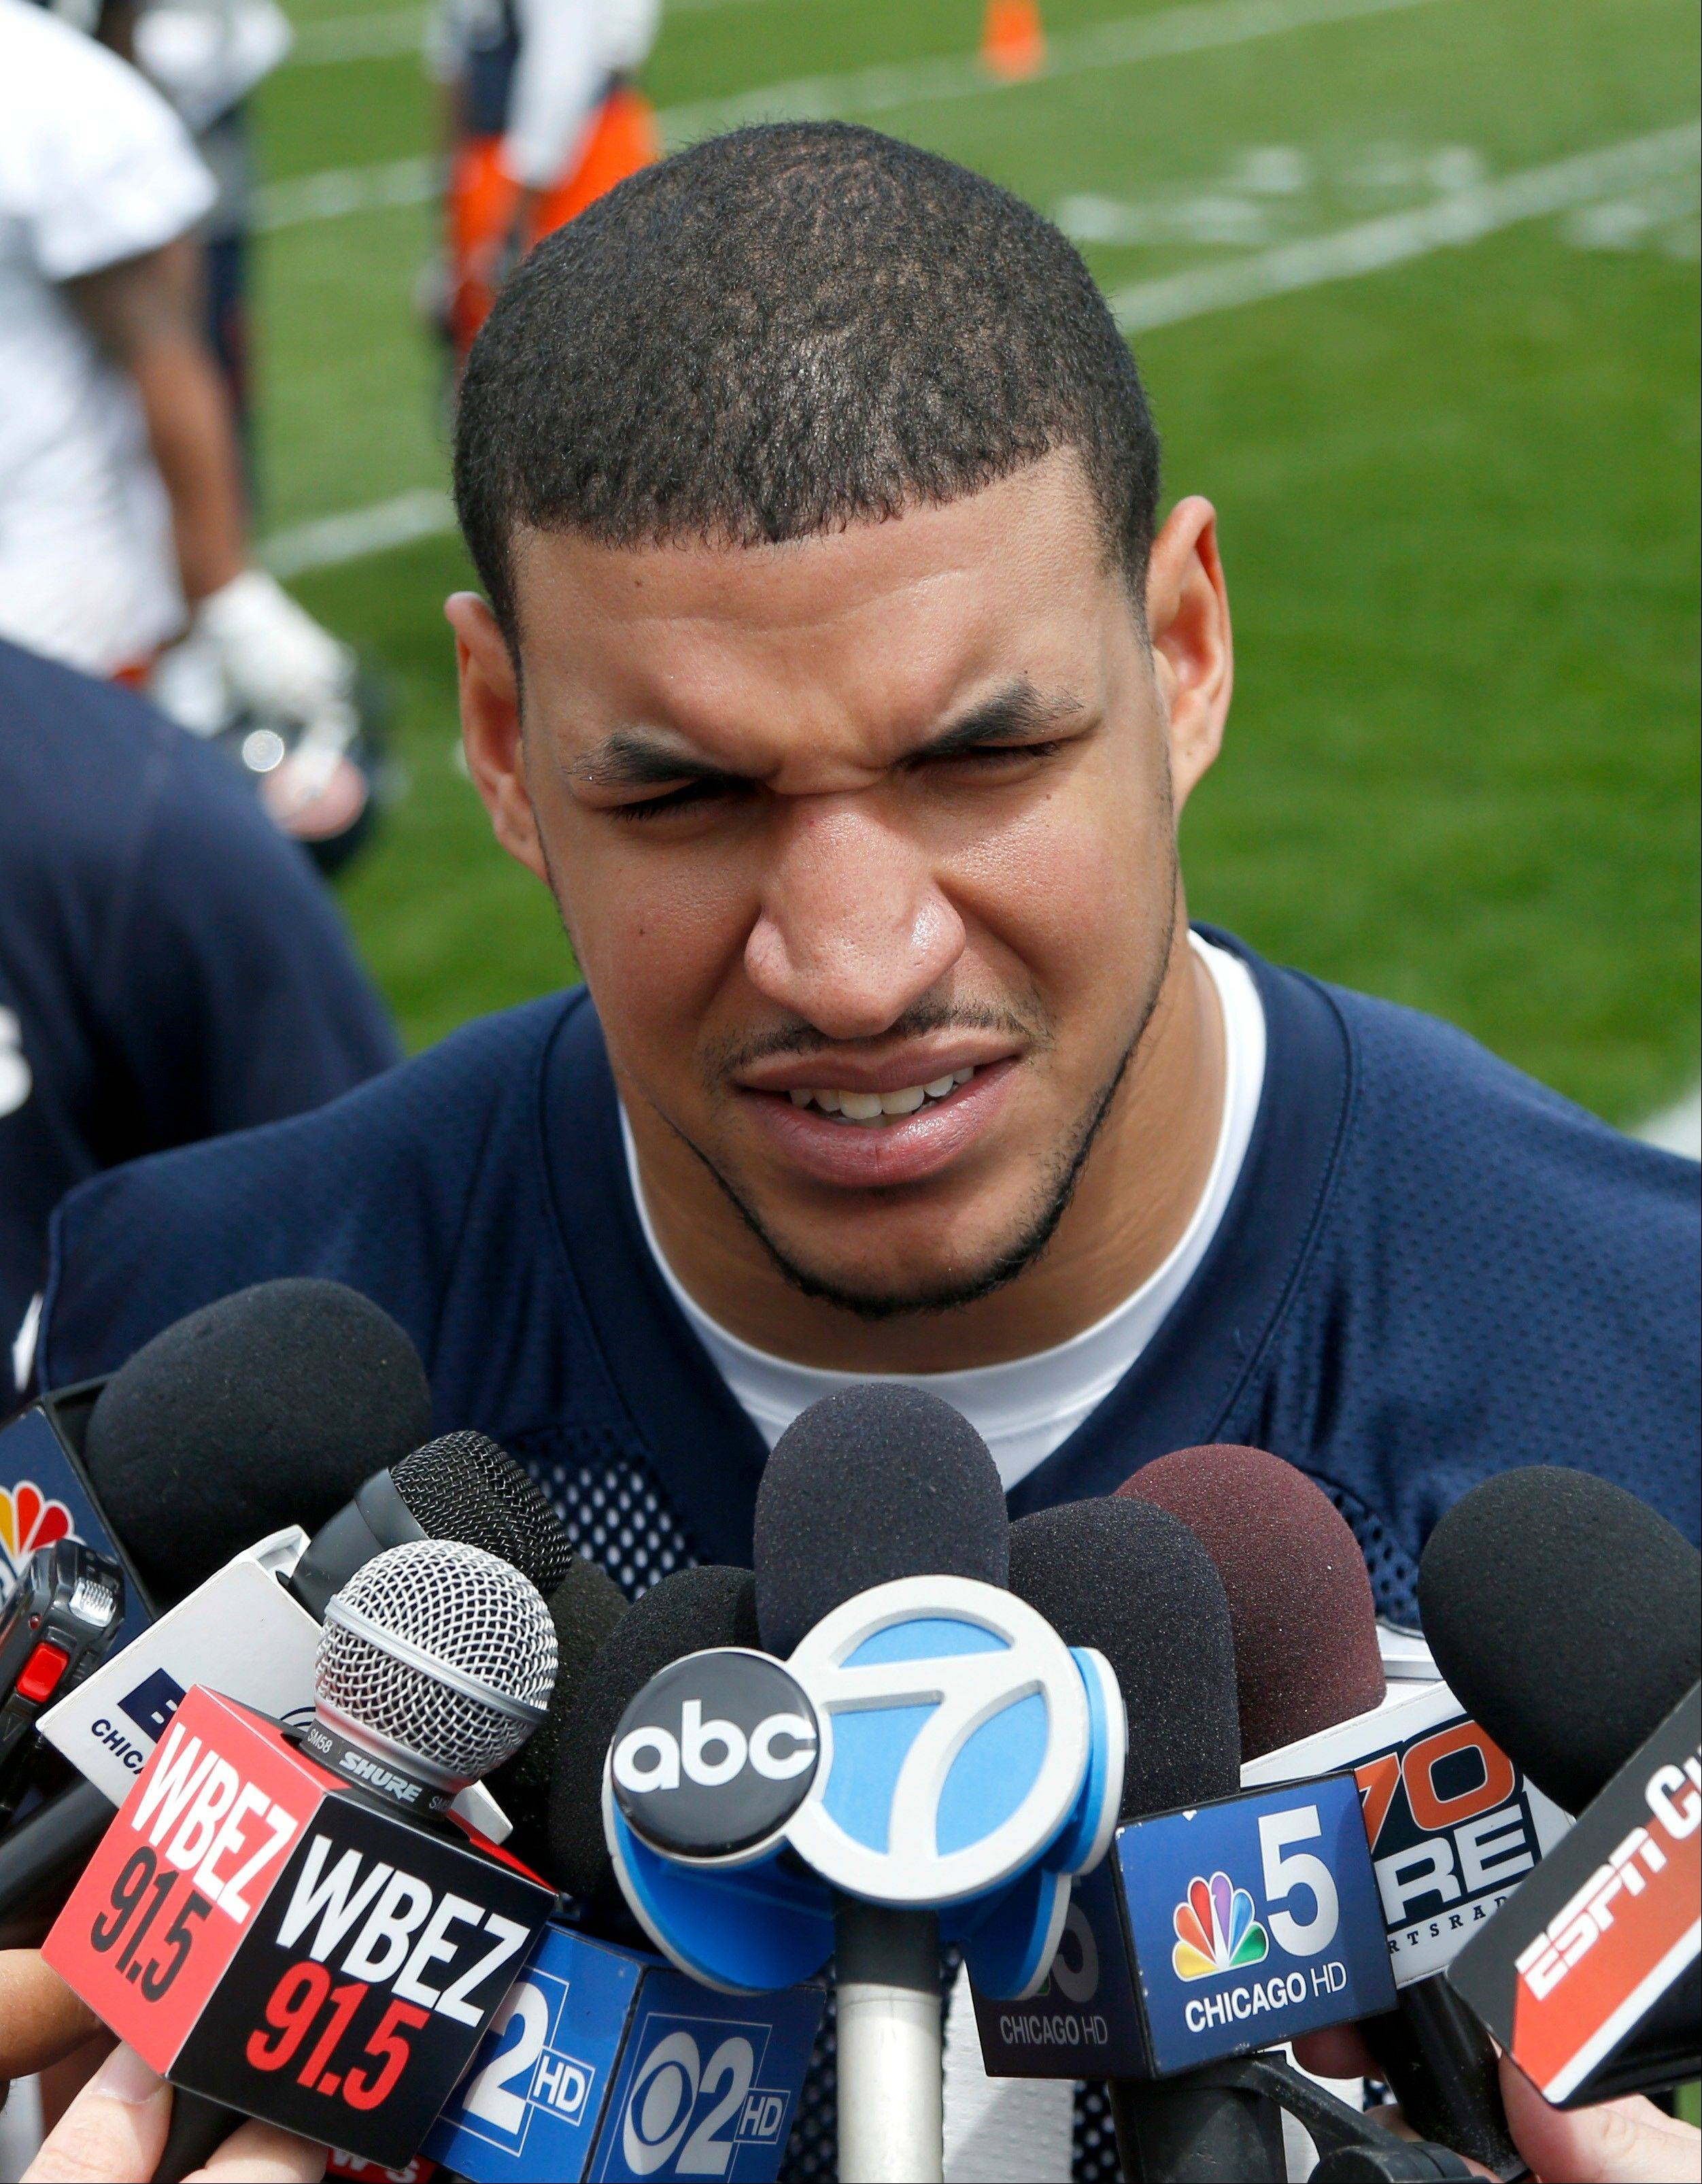 Bears tight end/fullback Evan Rodriguez talks with reporters after the NFL football team's practice Tuesday, June 4, 2013, in Lake Forest, Ill. Authorities say Rodriguez was ticketed for driving under the influence, speeding and improper lane usage and was ticketed early Friday on Interstate 90, near downtown Chicago.